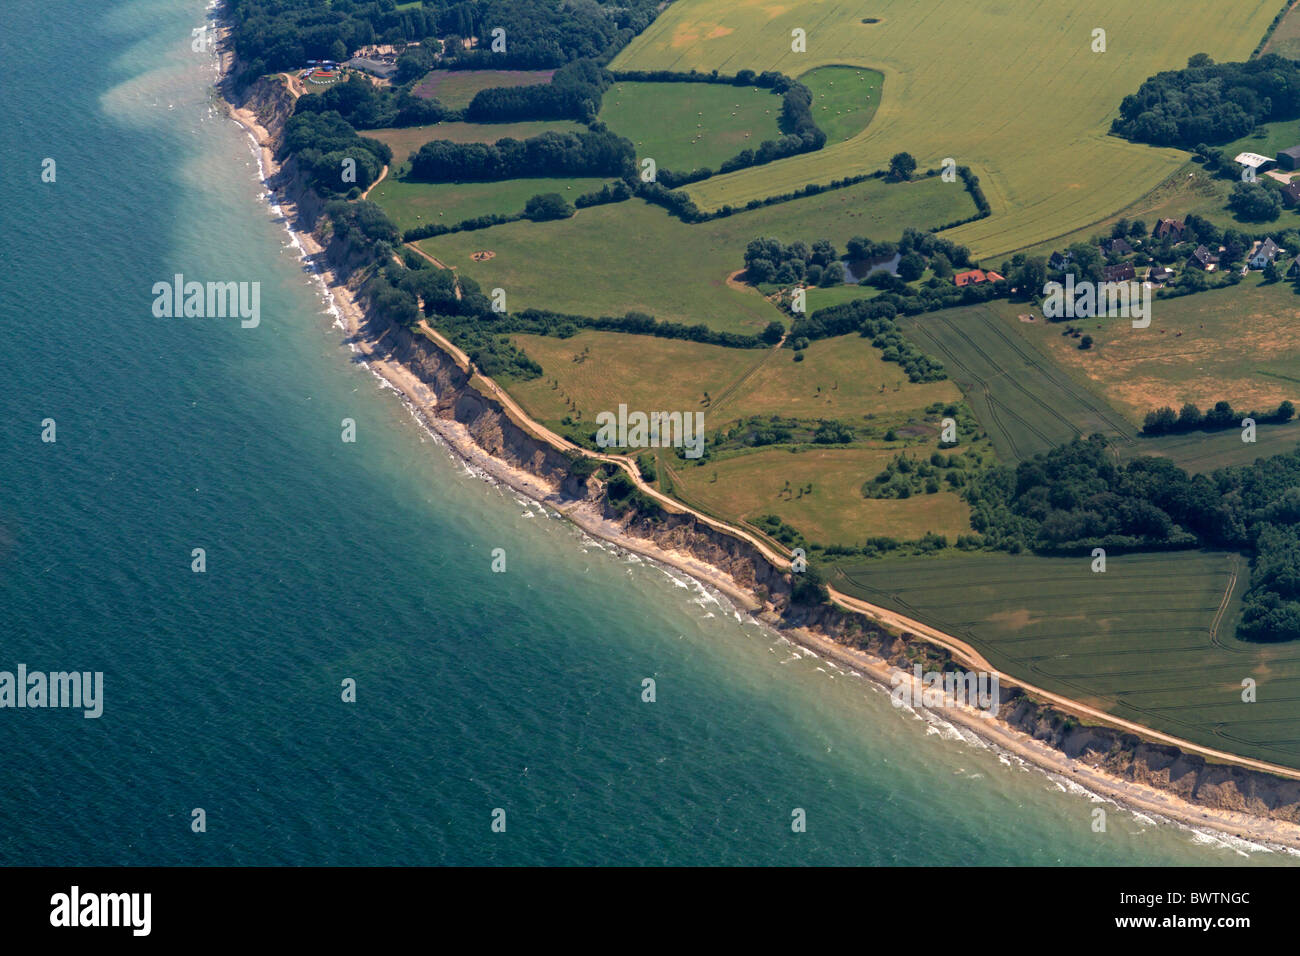 Aerial photograph of steep coast Brodtener Ufer, Baltic Sea, Schleswig-Hostein, Germany - Stock Image